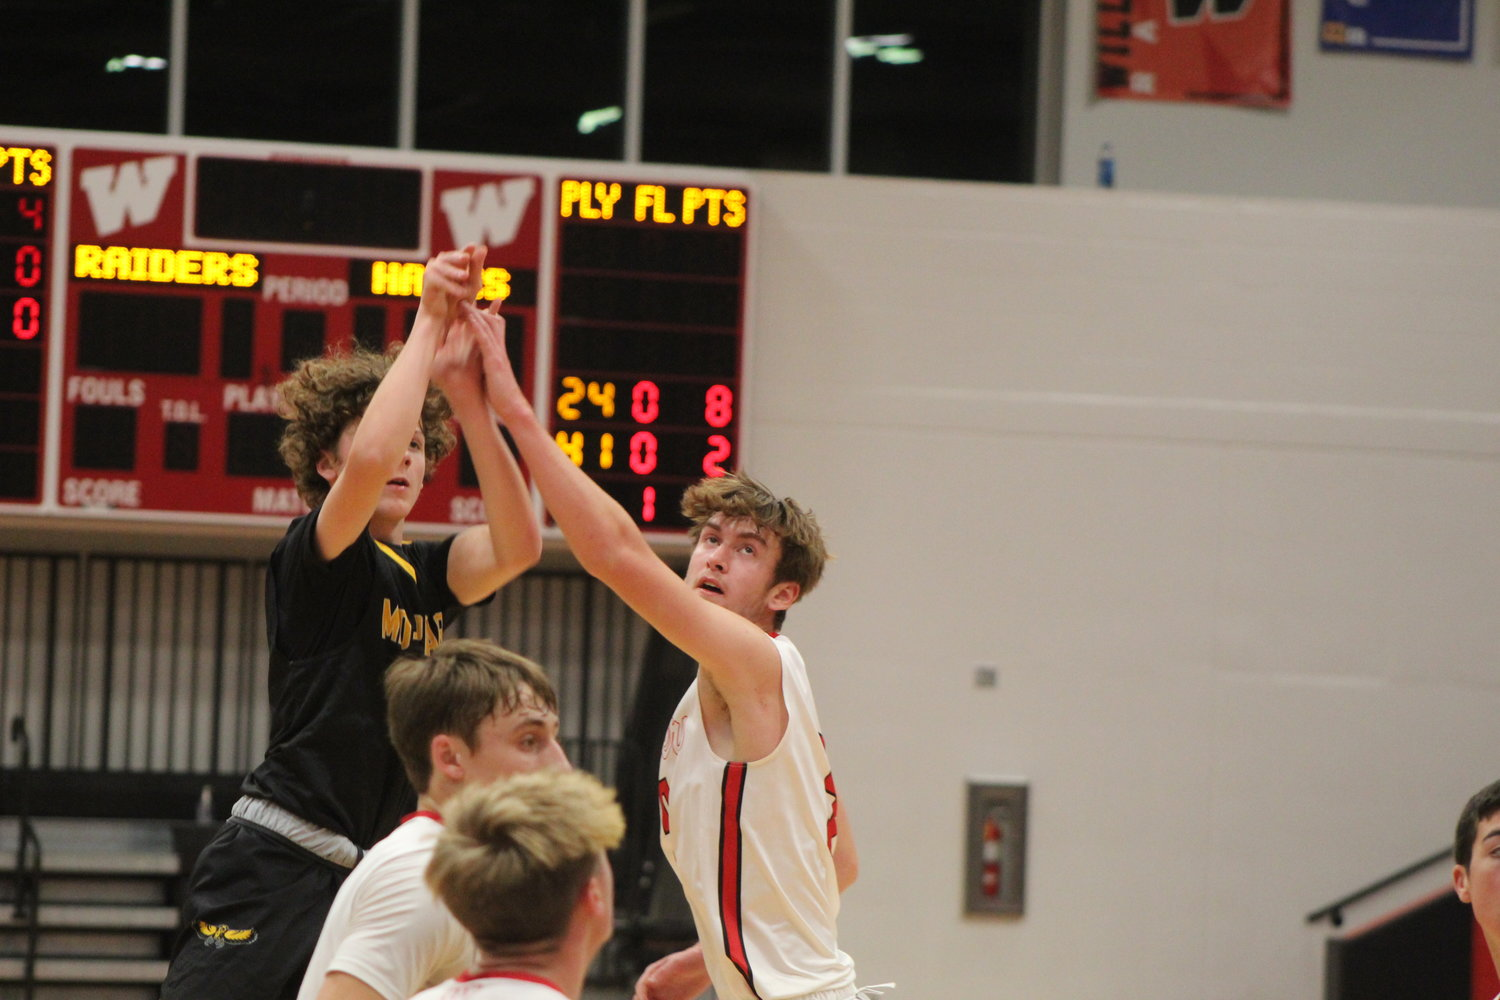 Jack Pennington of Mid-Prairie lets a shot fly in the Golden Hawks game at Williamsburg on Tuesday, Dec. 1.